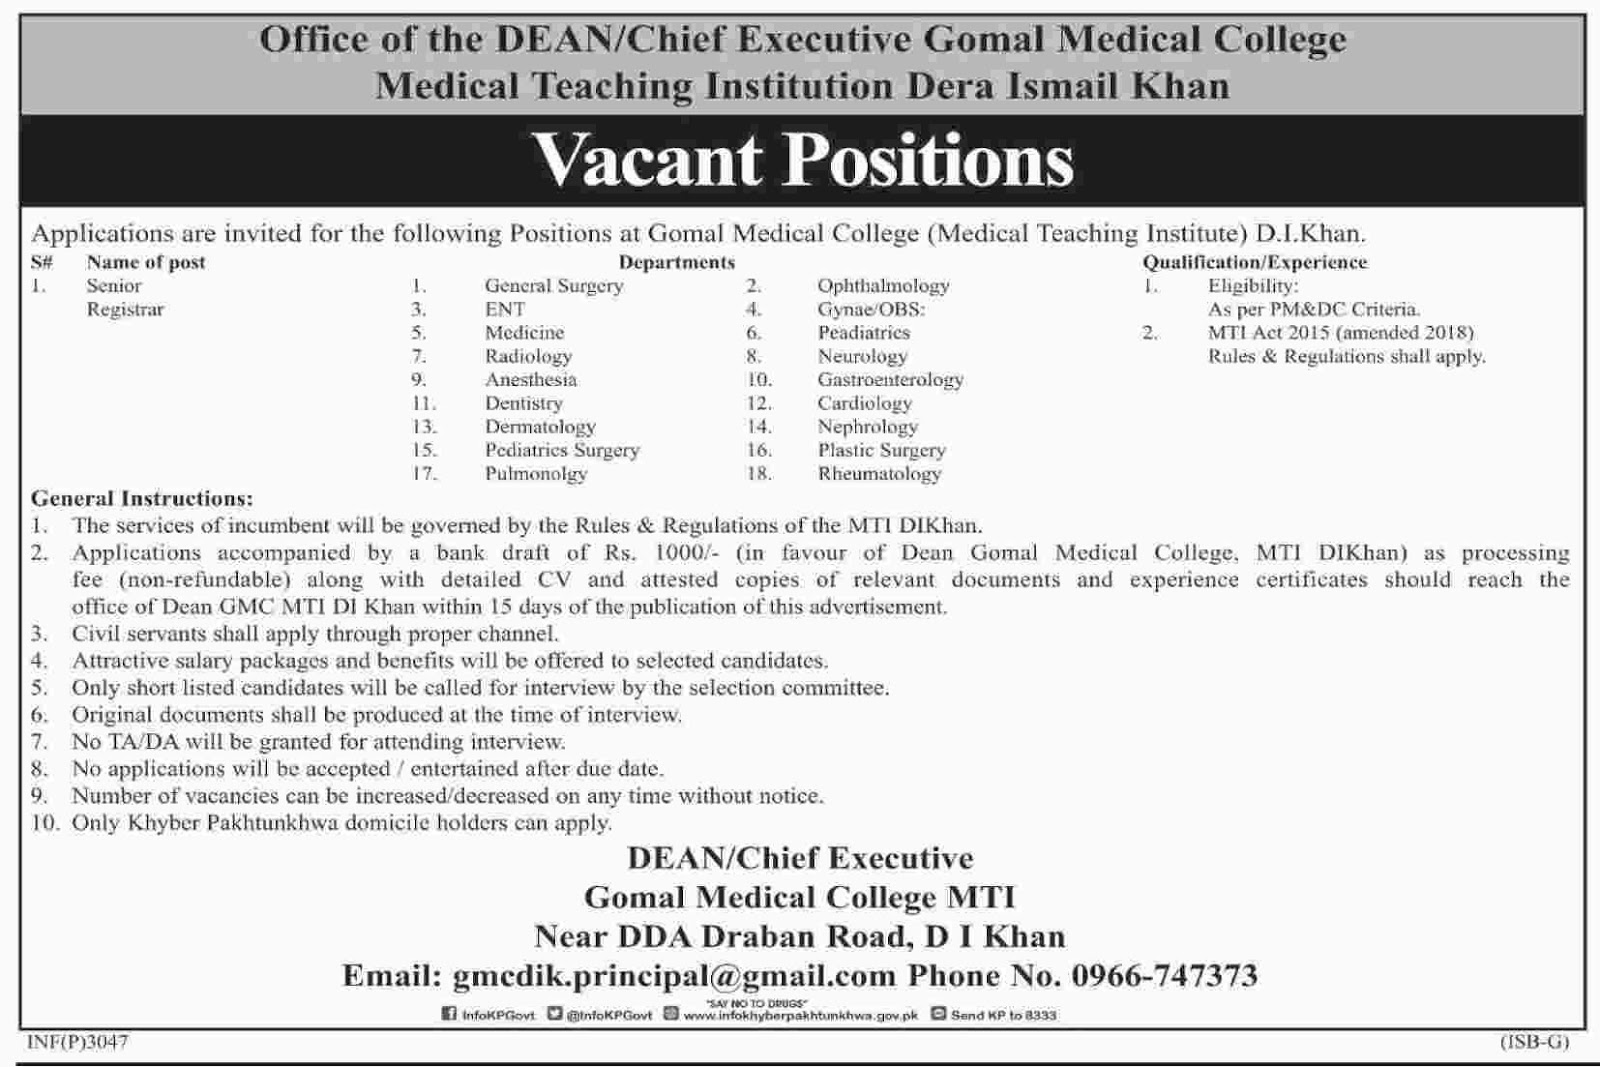 Gomal Medical College DI Khan Latest Jobs July 2019